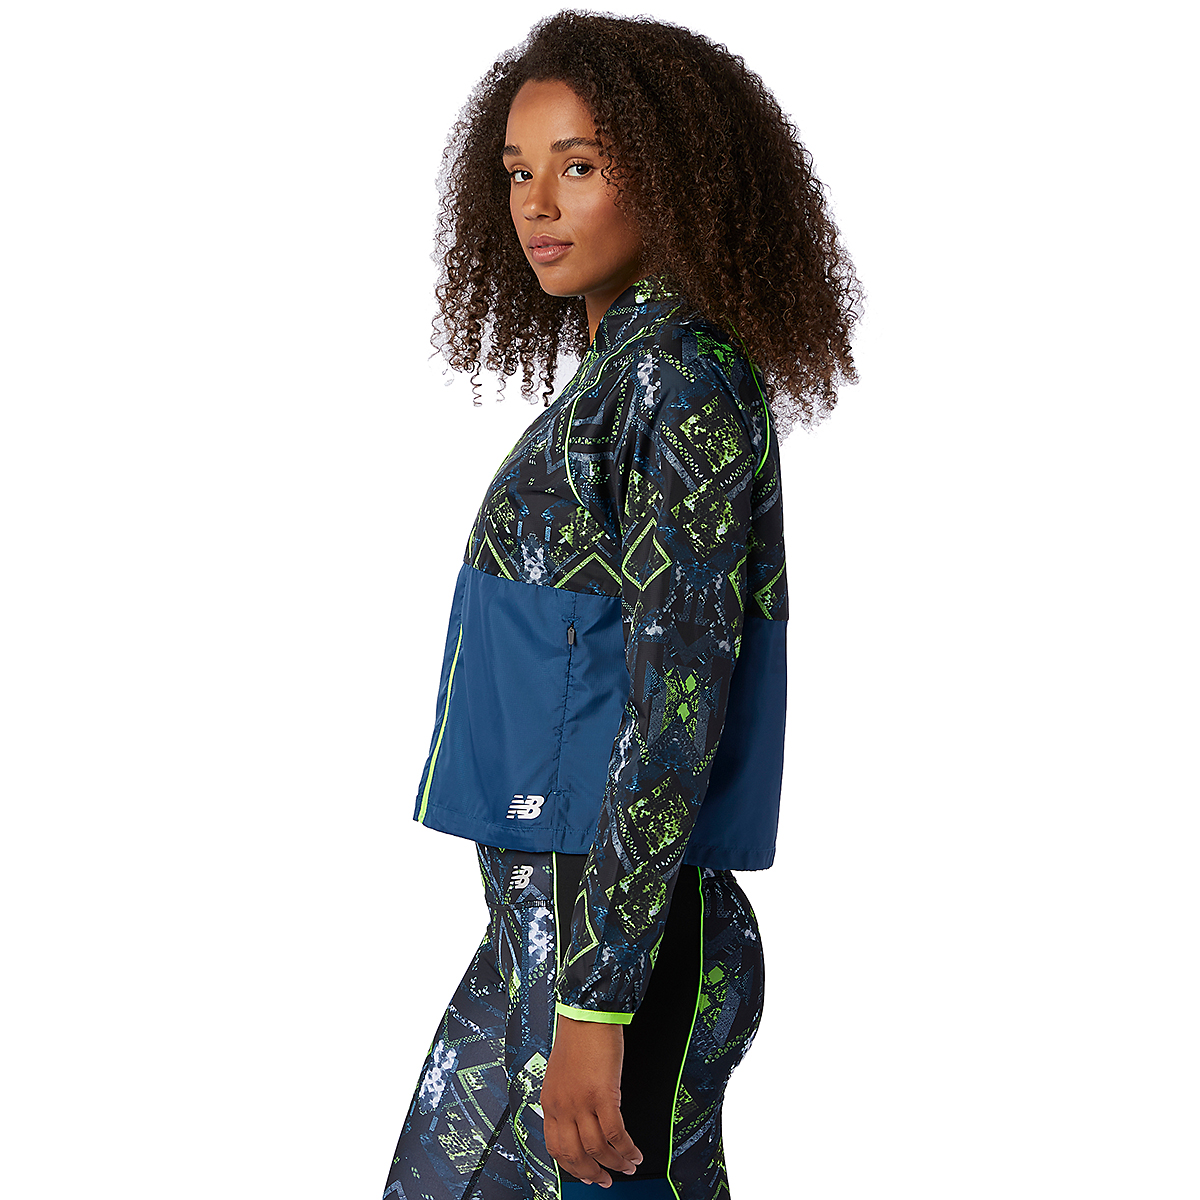 Women's New Balance Printed Fast Flight Jacket - Color: Print - Size: XS, Print, large, image 2